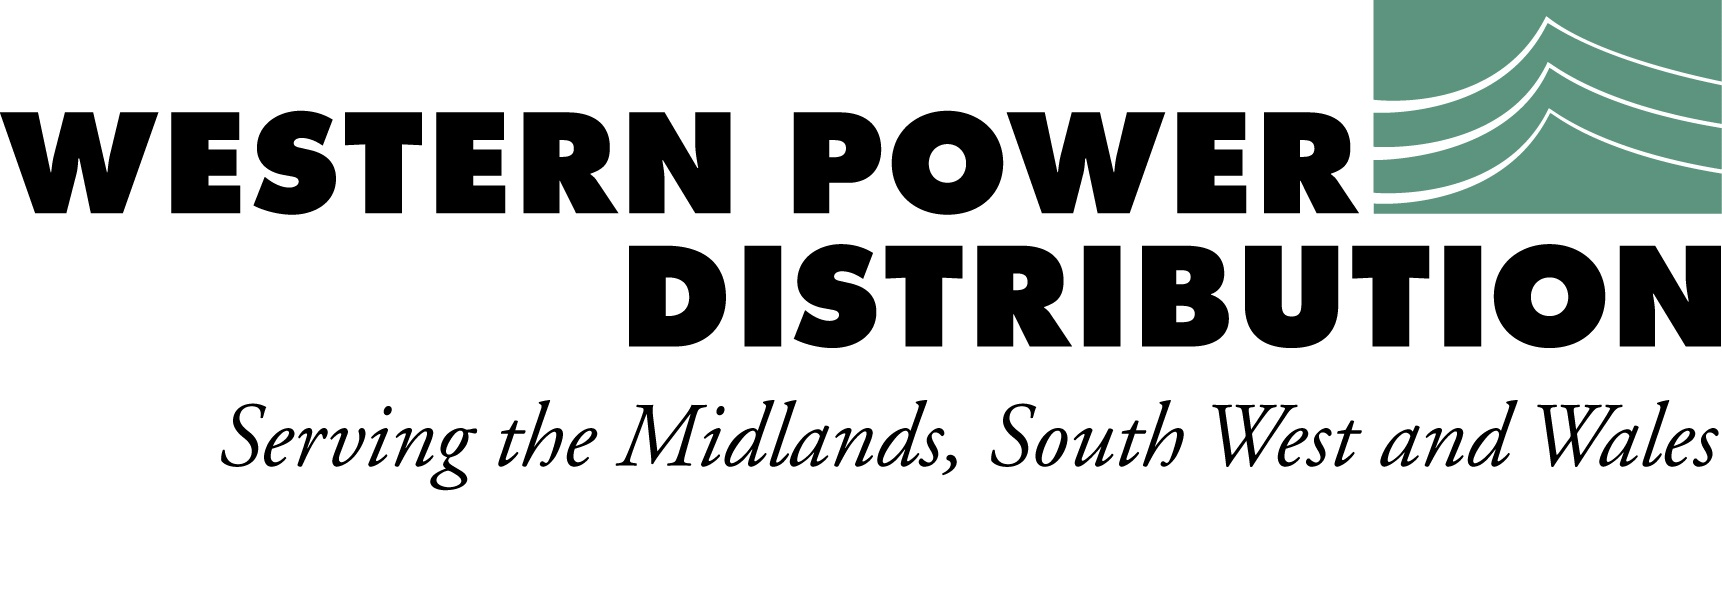 Western Power Distribution PR strategy support logo